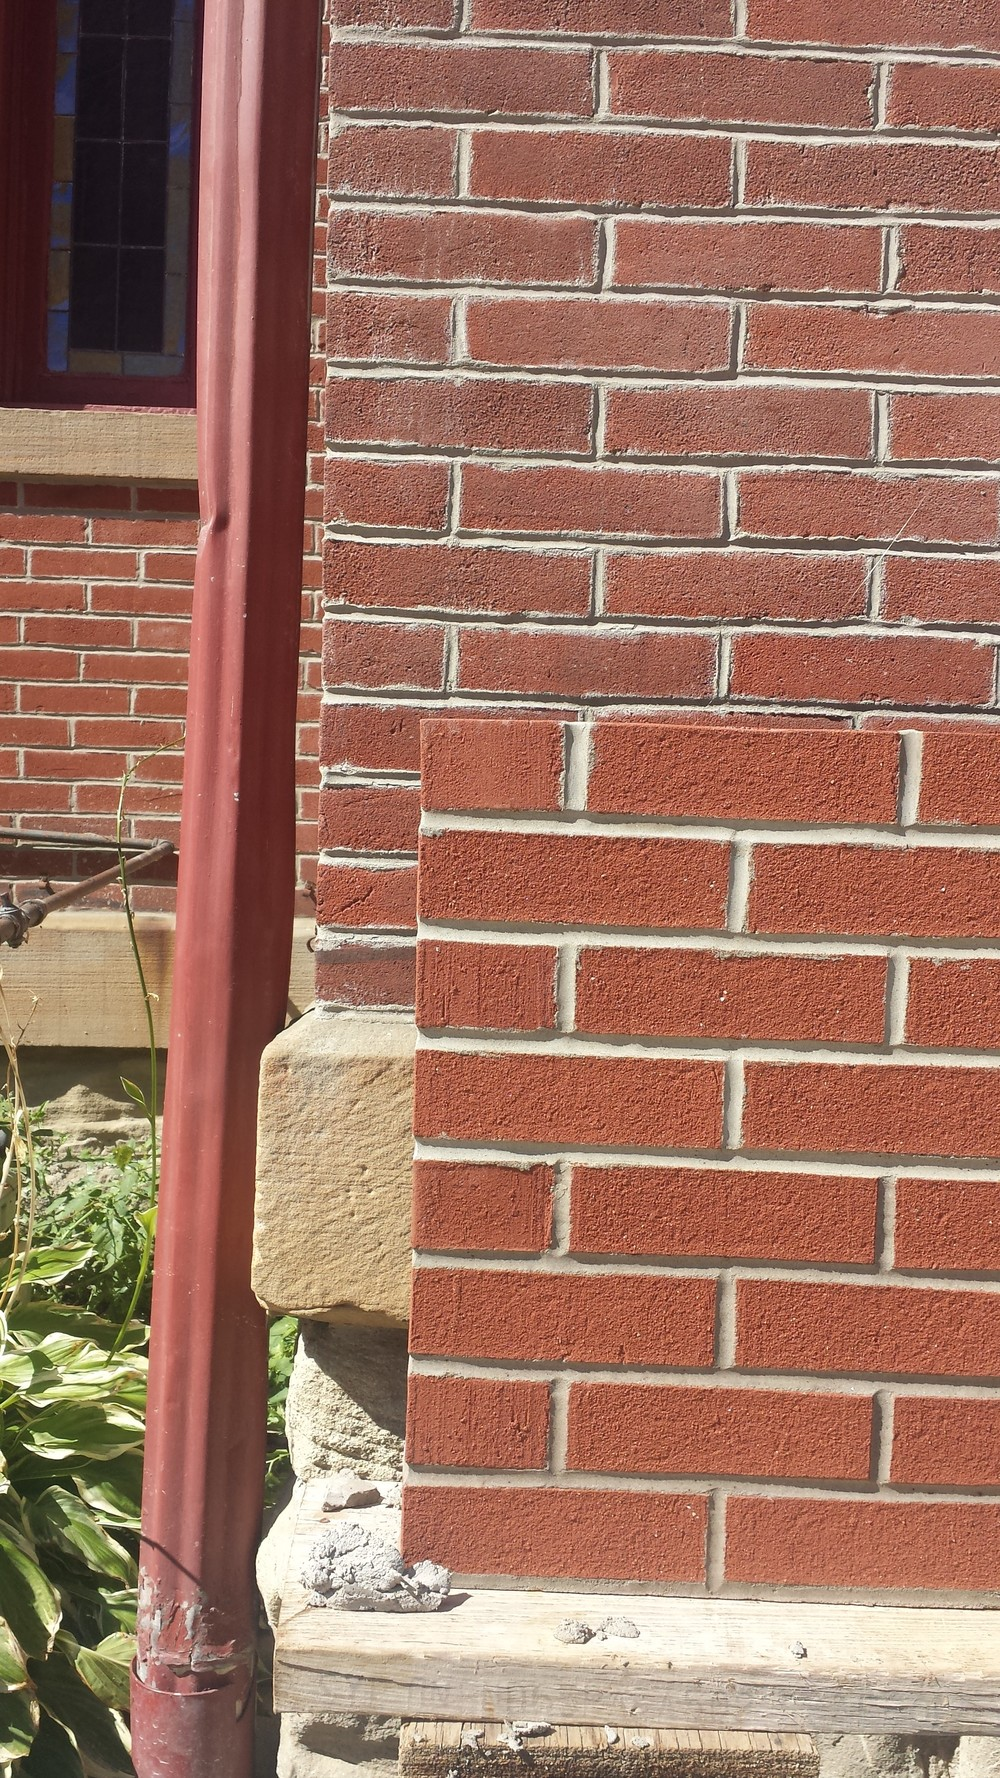 Matching new brick with the 100+-year-old brick on the existing building.